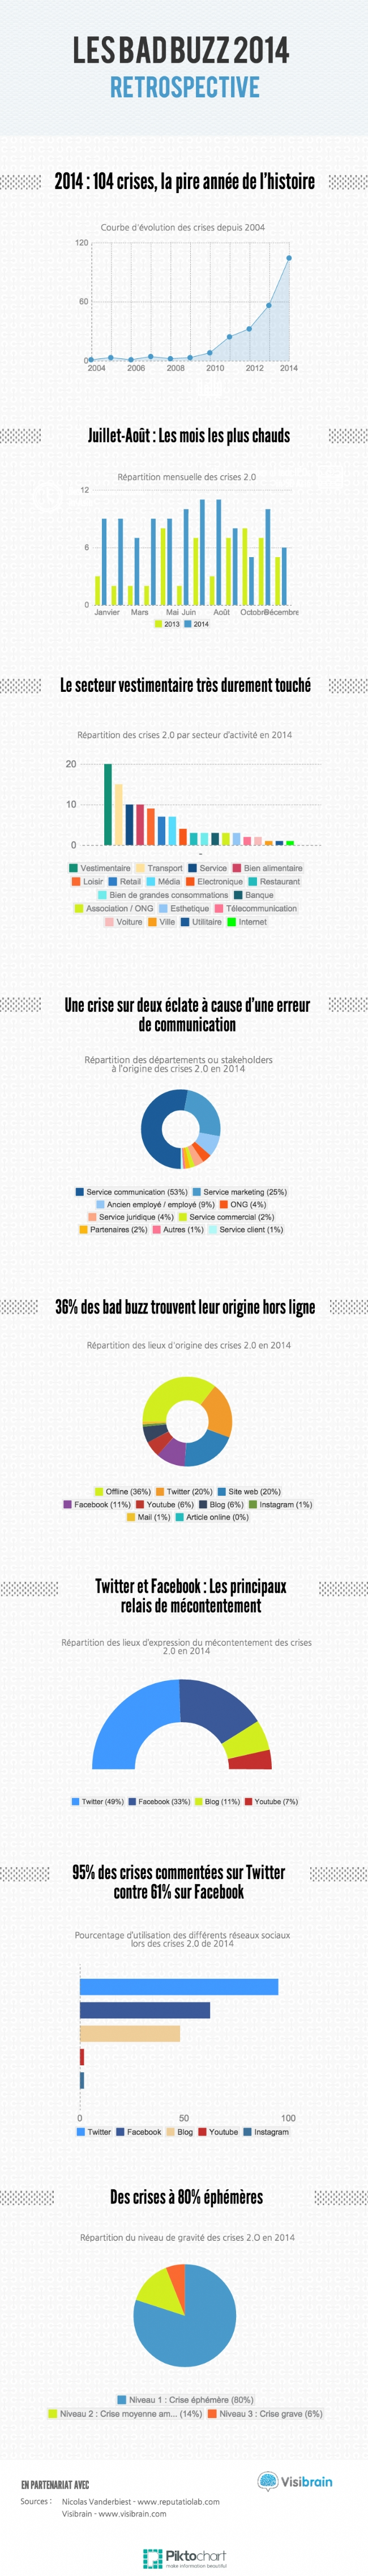 Infographie-173-Les-bad-buzz-sont-relayes-priorite-Twitter